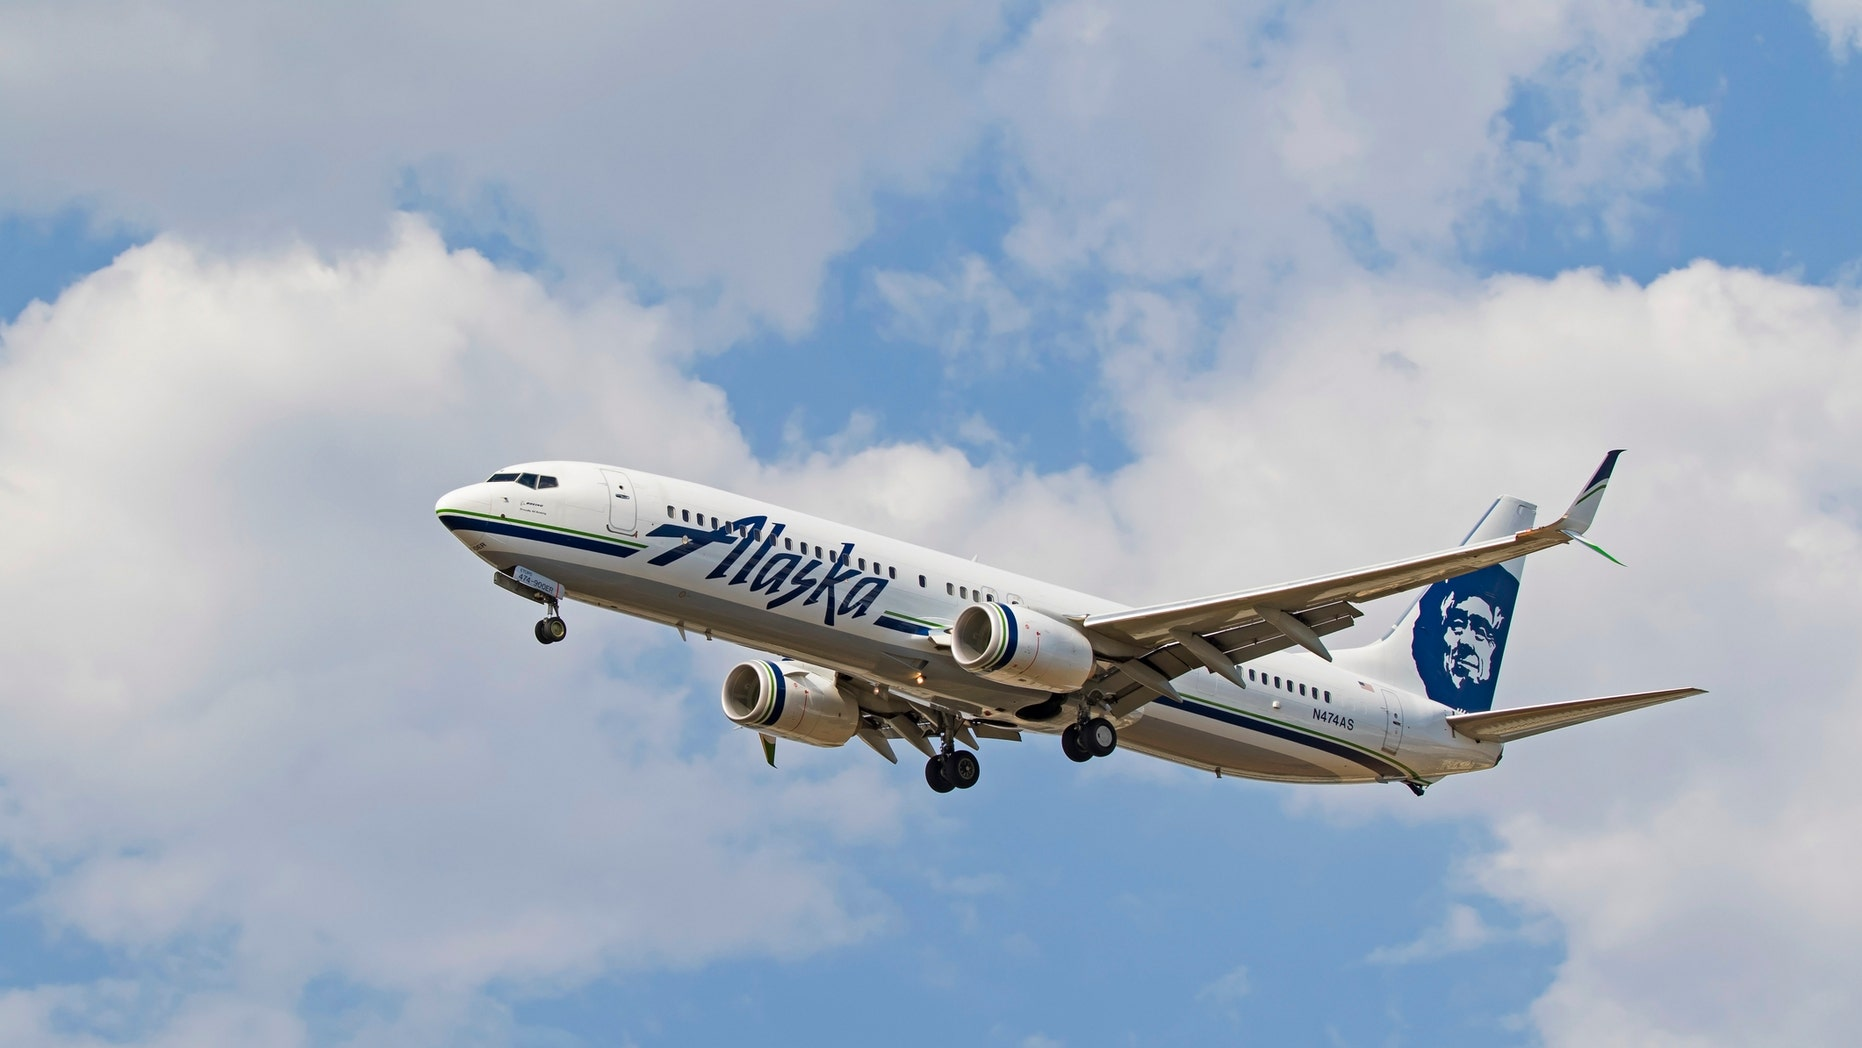 A total of 12 passengers and crew members were reportedly treated upon landing.